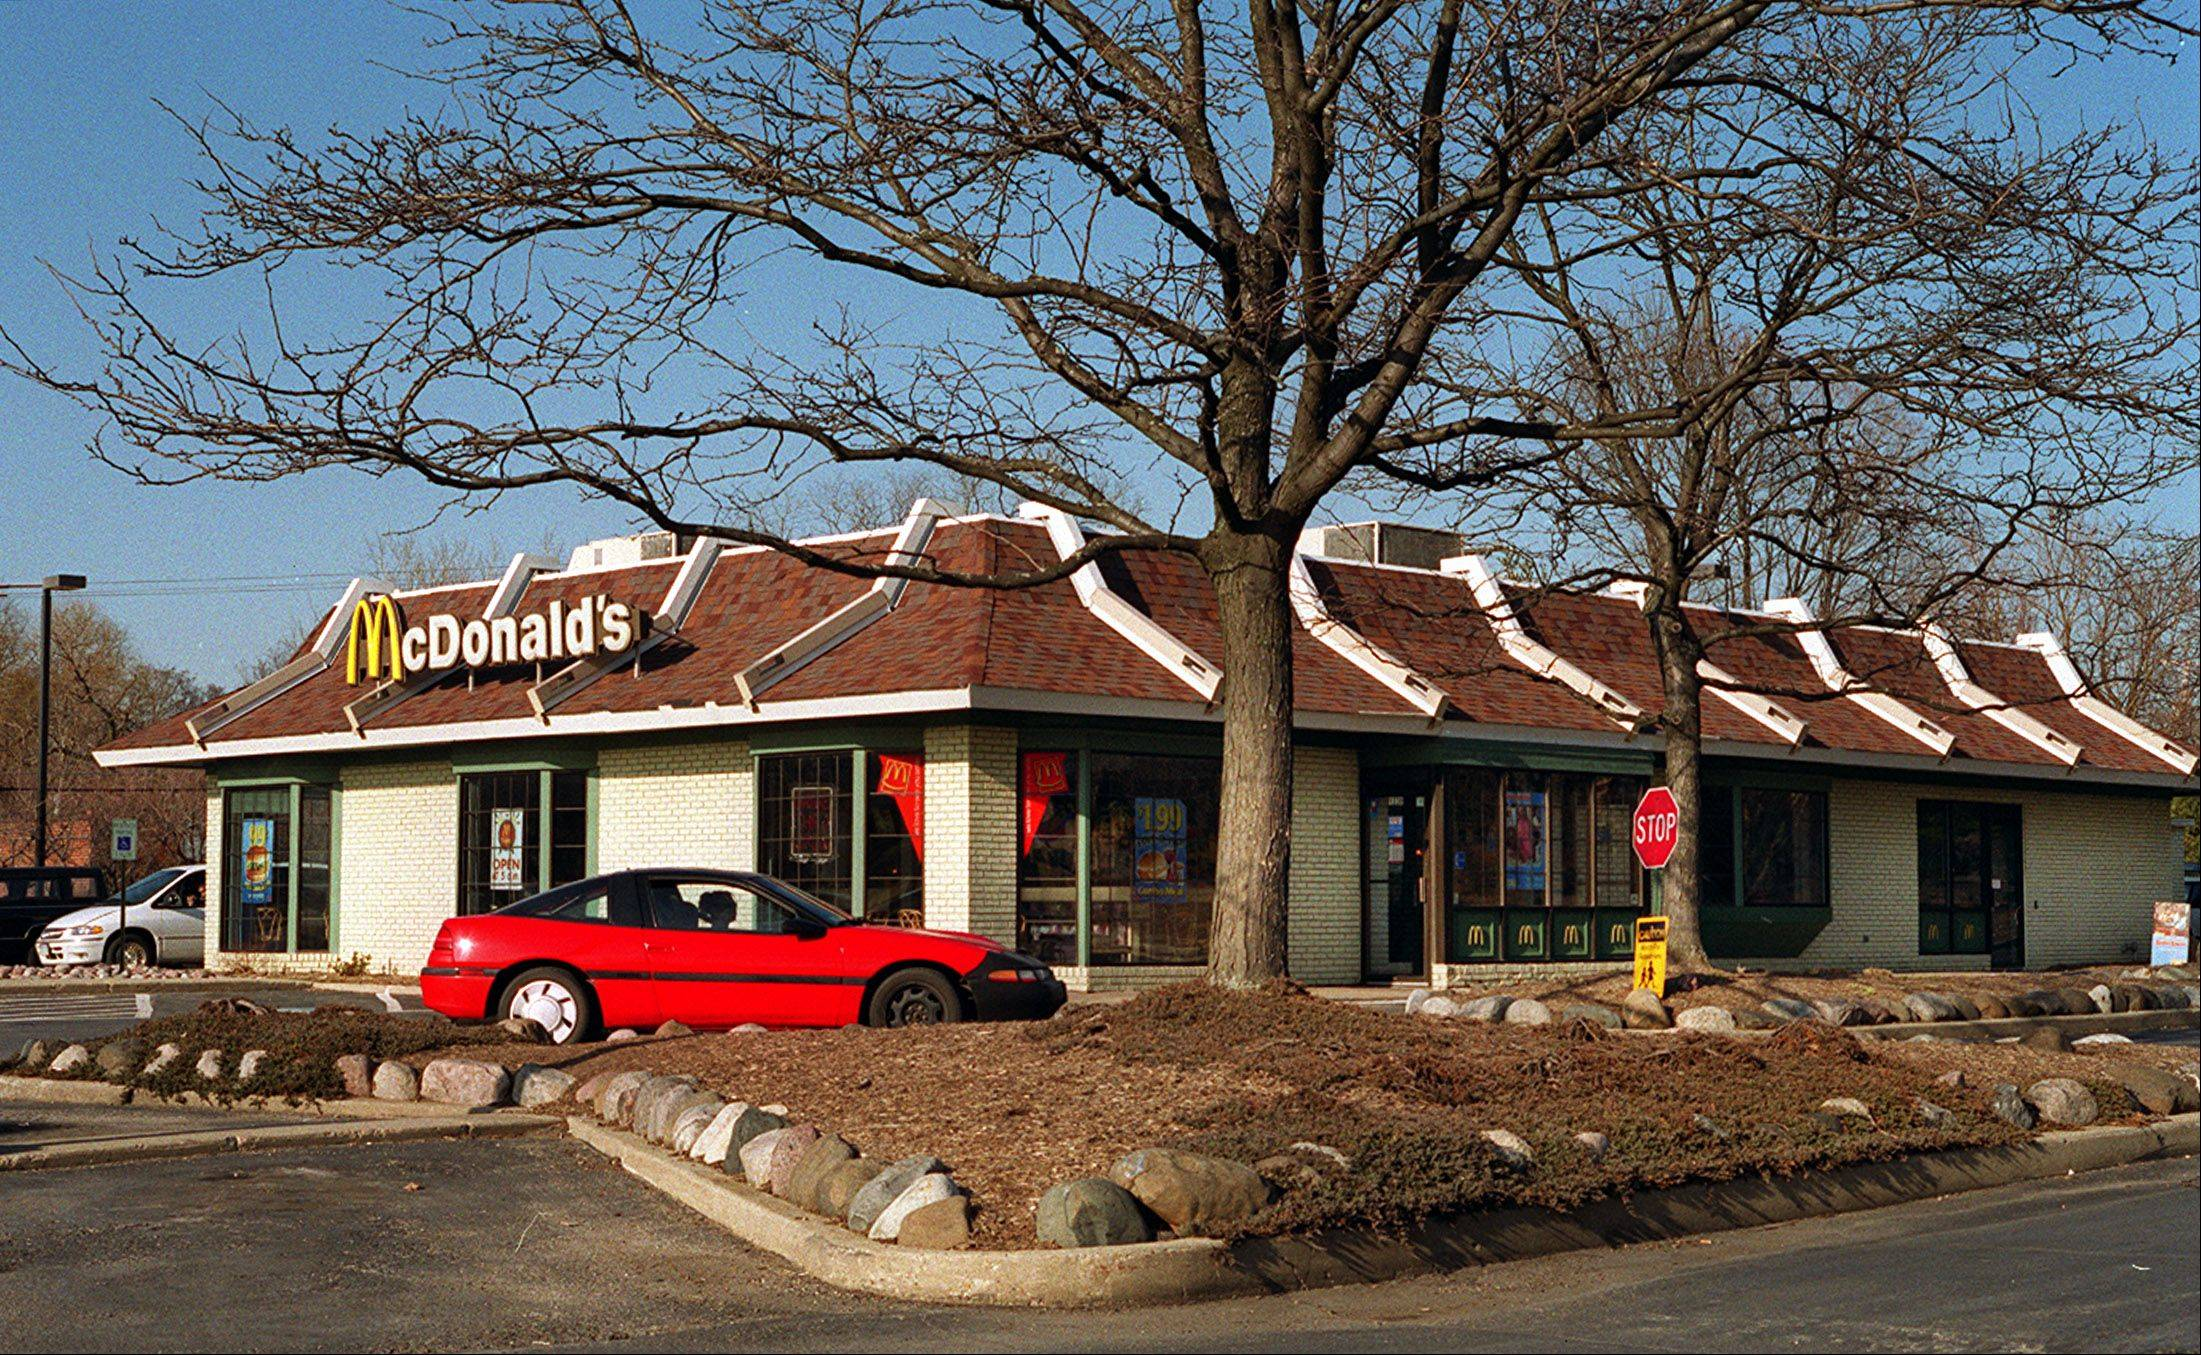 Oak Brook-based McDonald's Corp. said Thursday that a key sales figure fell for the first time in nearly a decade in October, as it faced intensifying competition and a challenging economy.